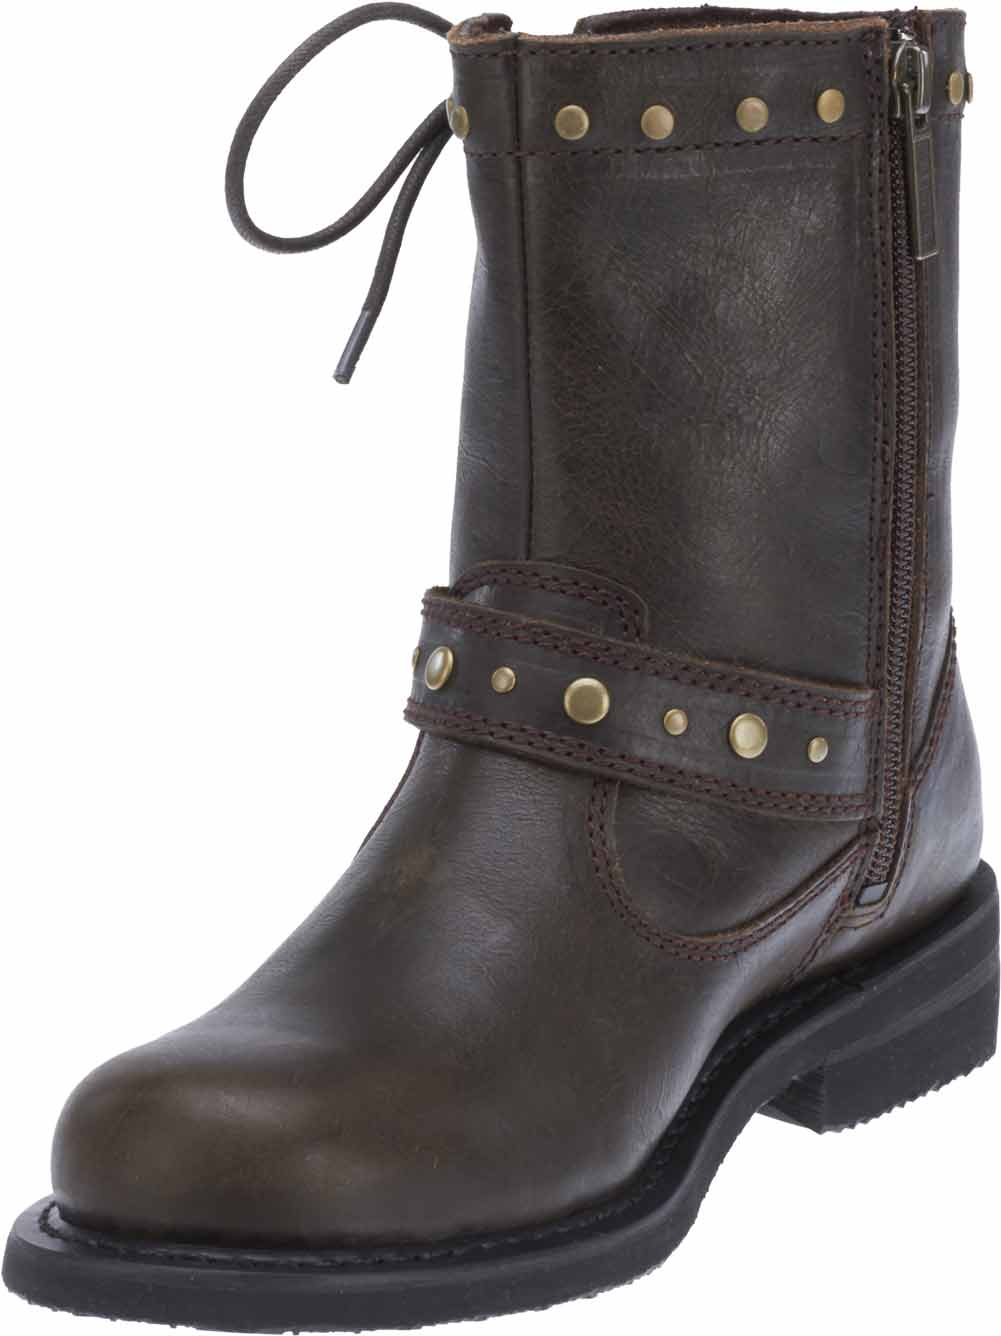 Simple Harley Davidson Womens Felicity Motorcycle Boots Buckl Brown | EBay